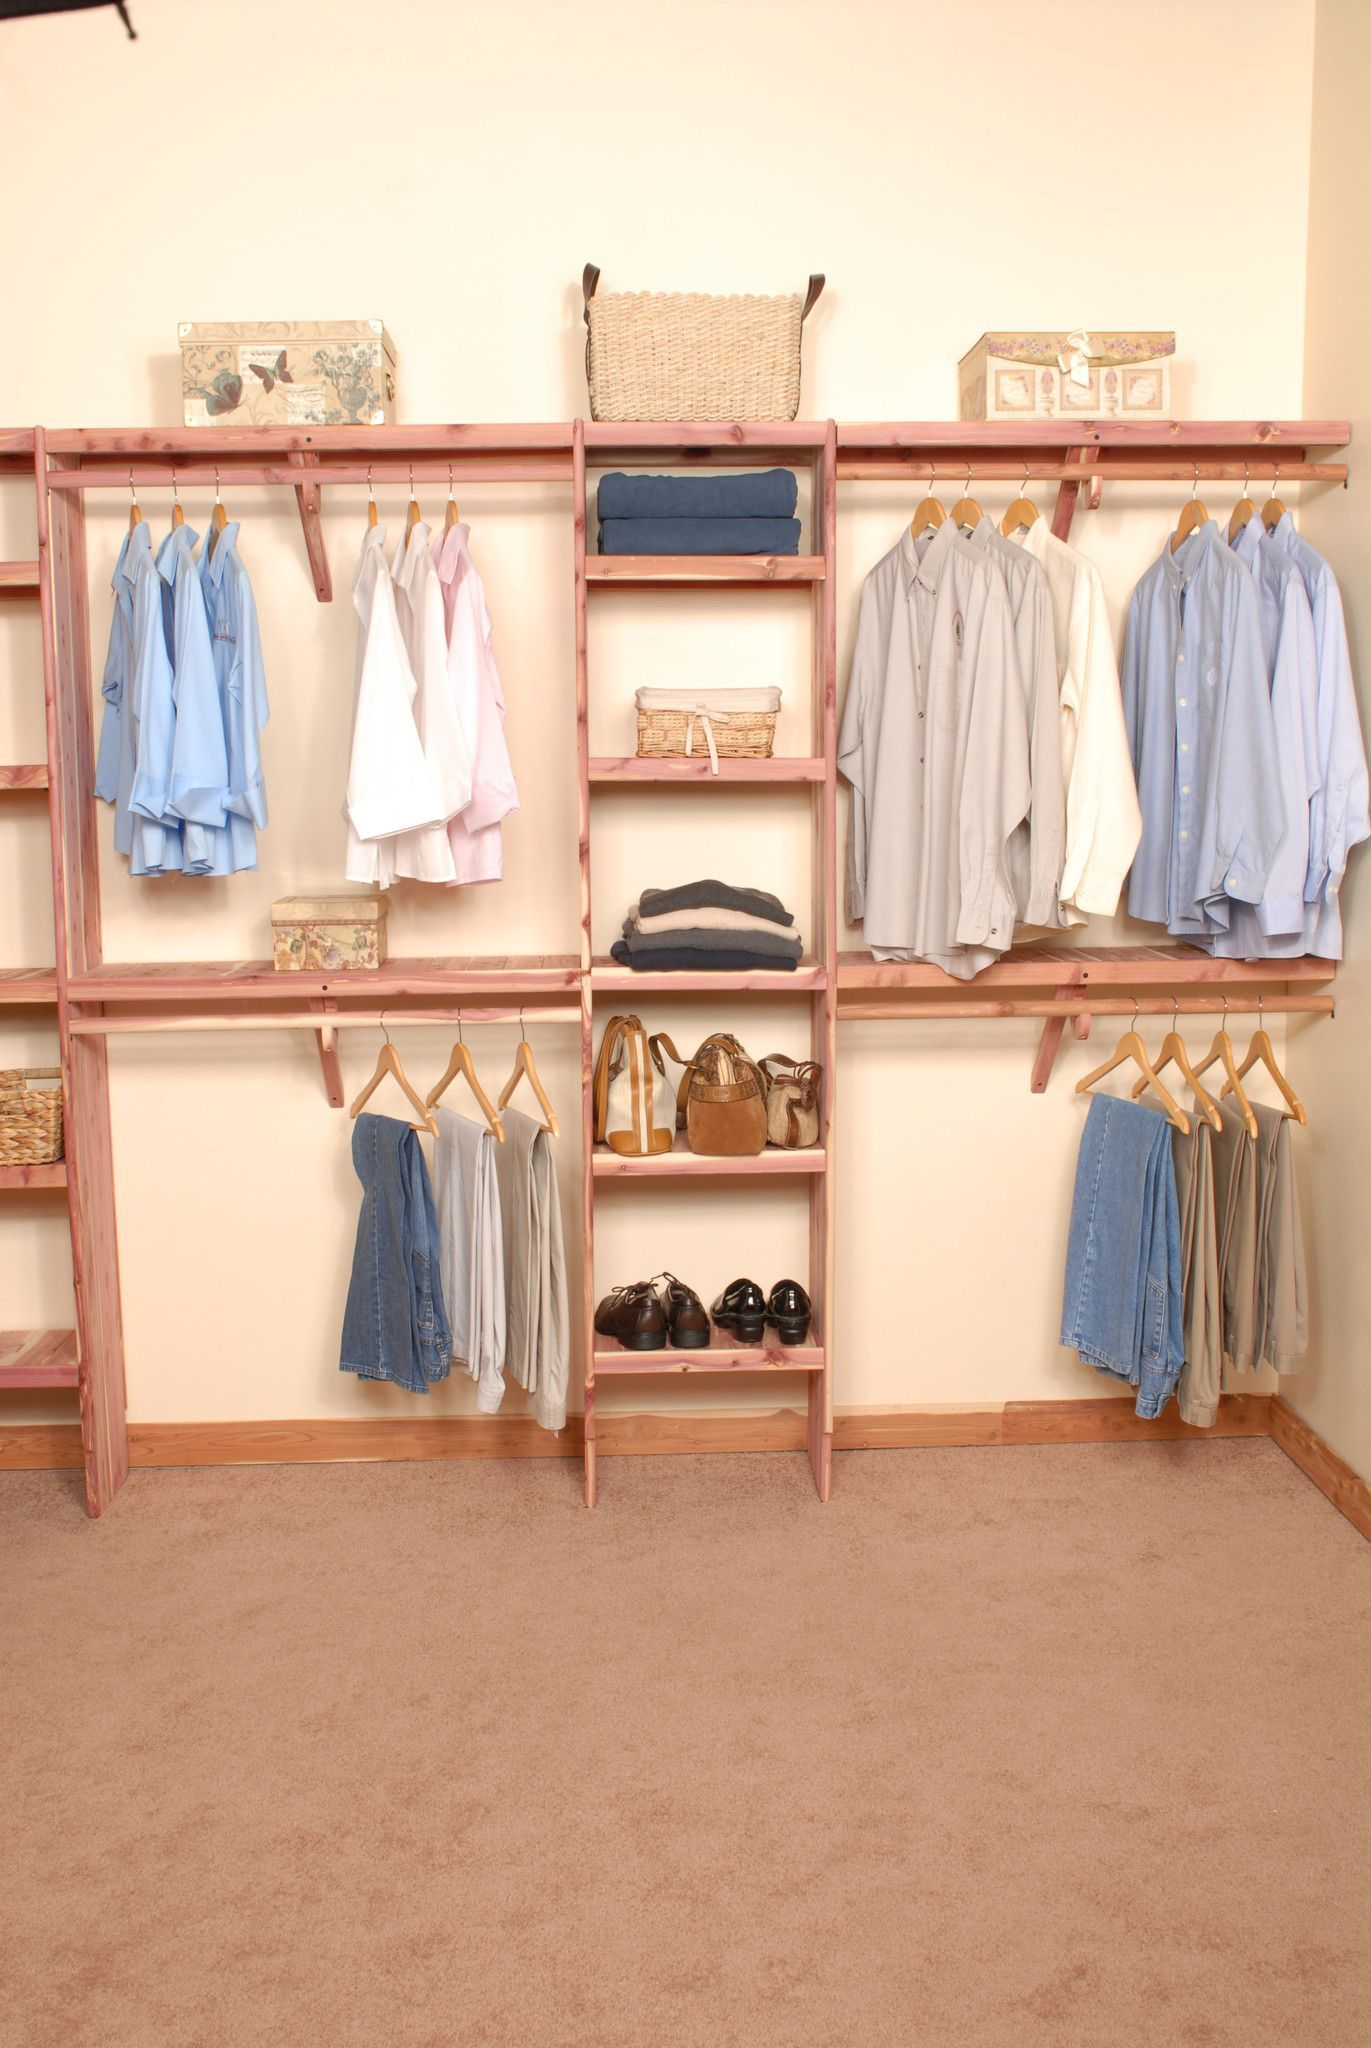 Deluxe Solid Wall Closet Organization Kit 8 Closet Wall Organizer Wall Closet Closet Organizer Kits